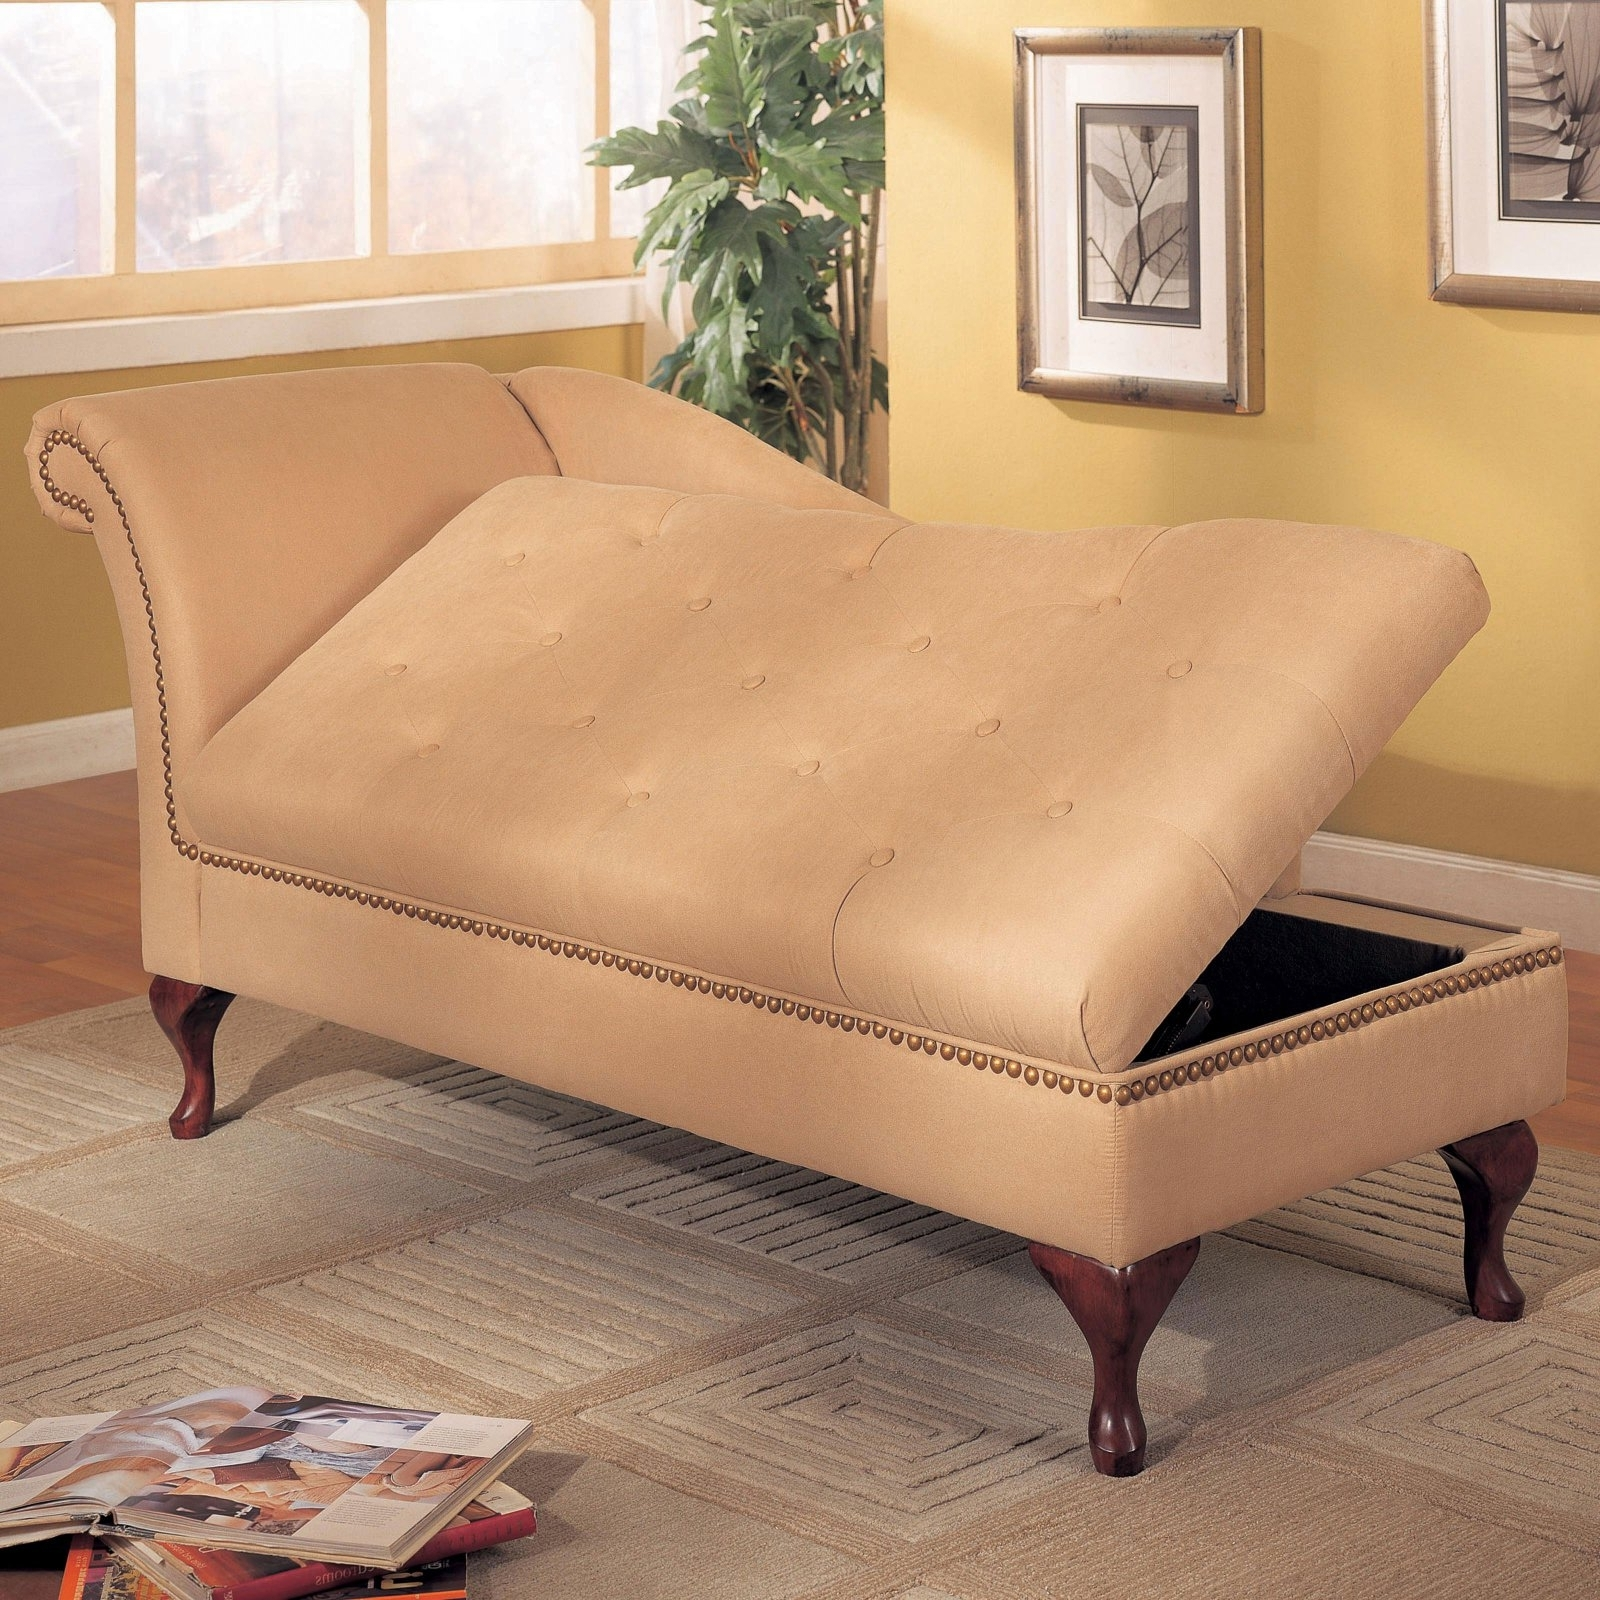 Latest Chaise Lounge Chairs For Small Spaces Regarding Small Chaise Lounge Chair For Room Awesome Bedroom Chairs Ideas (View 5 of 15)